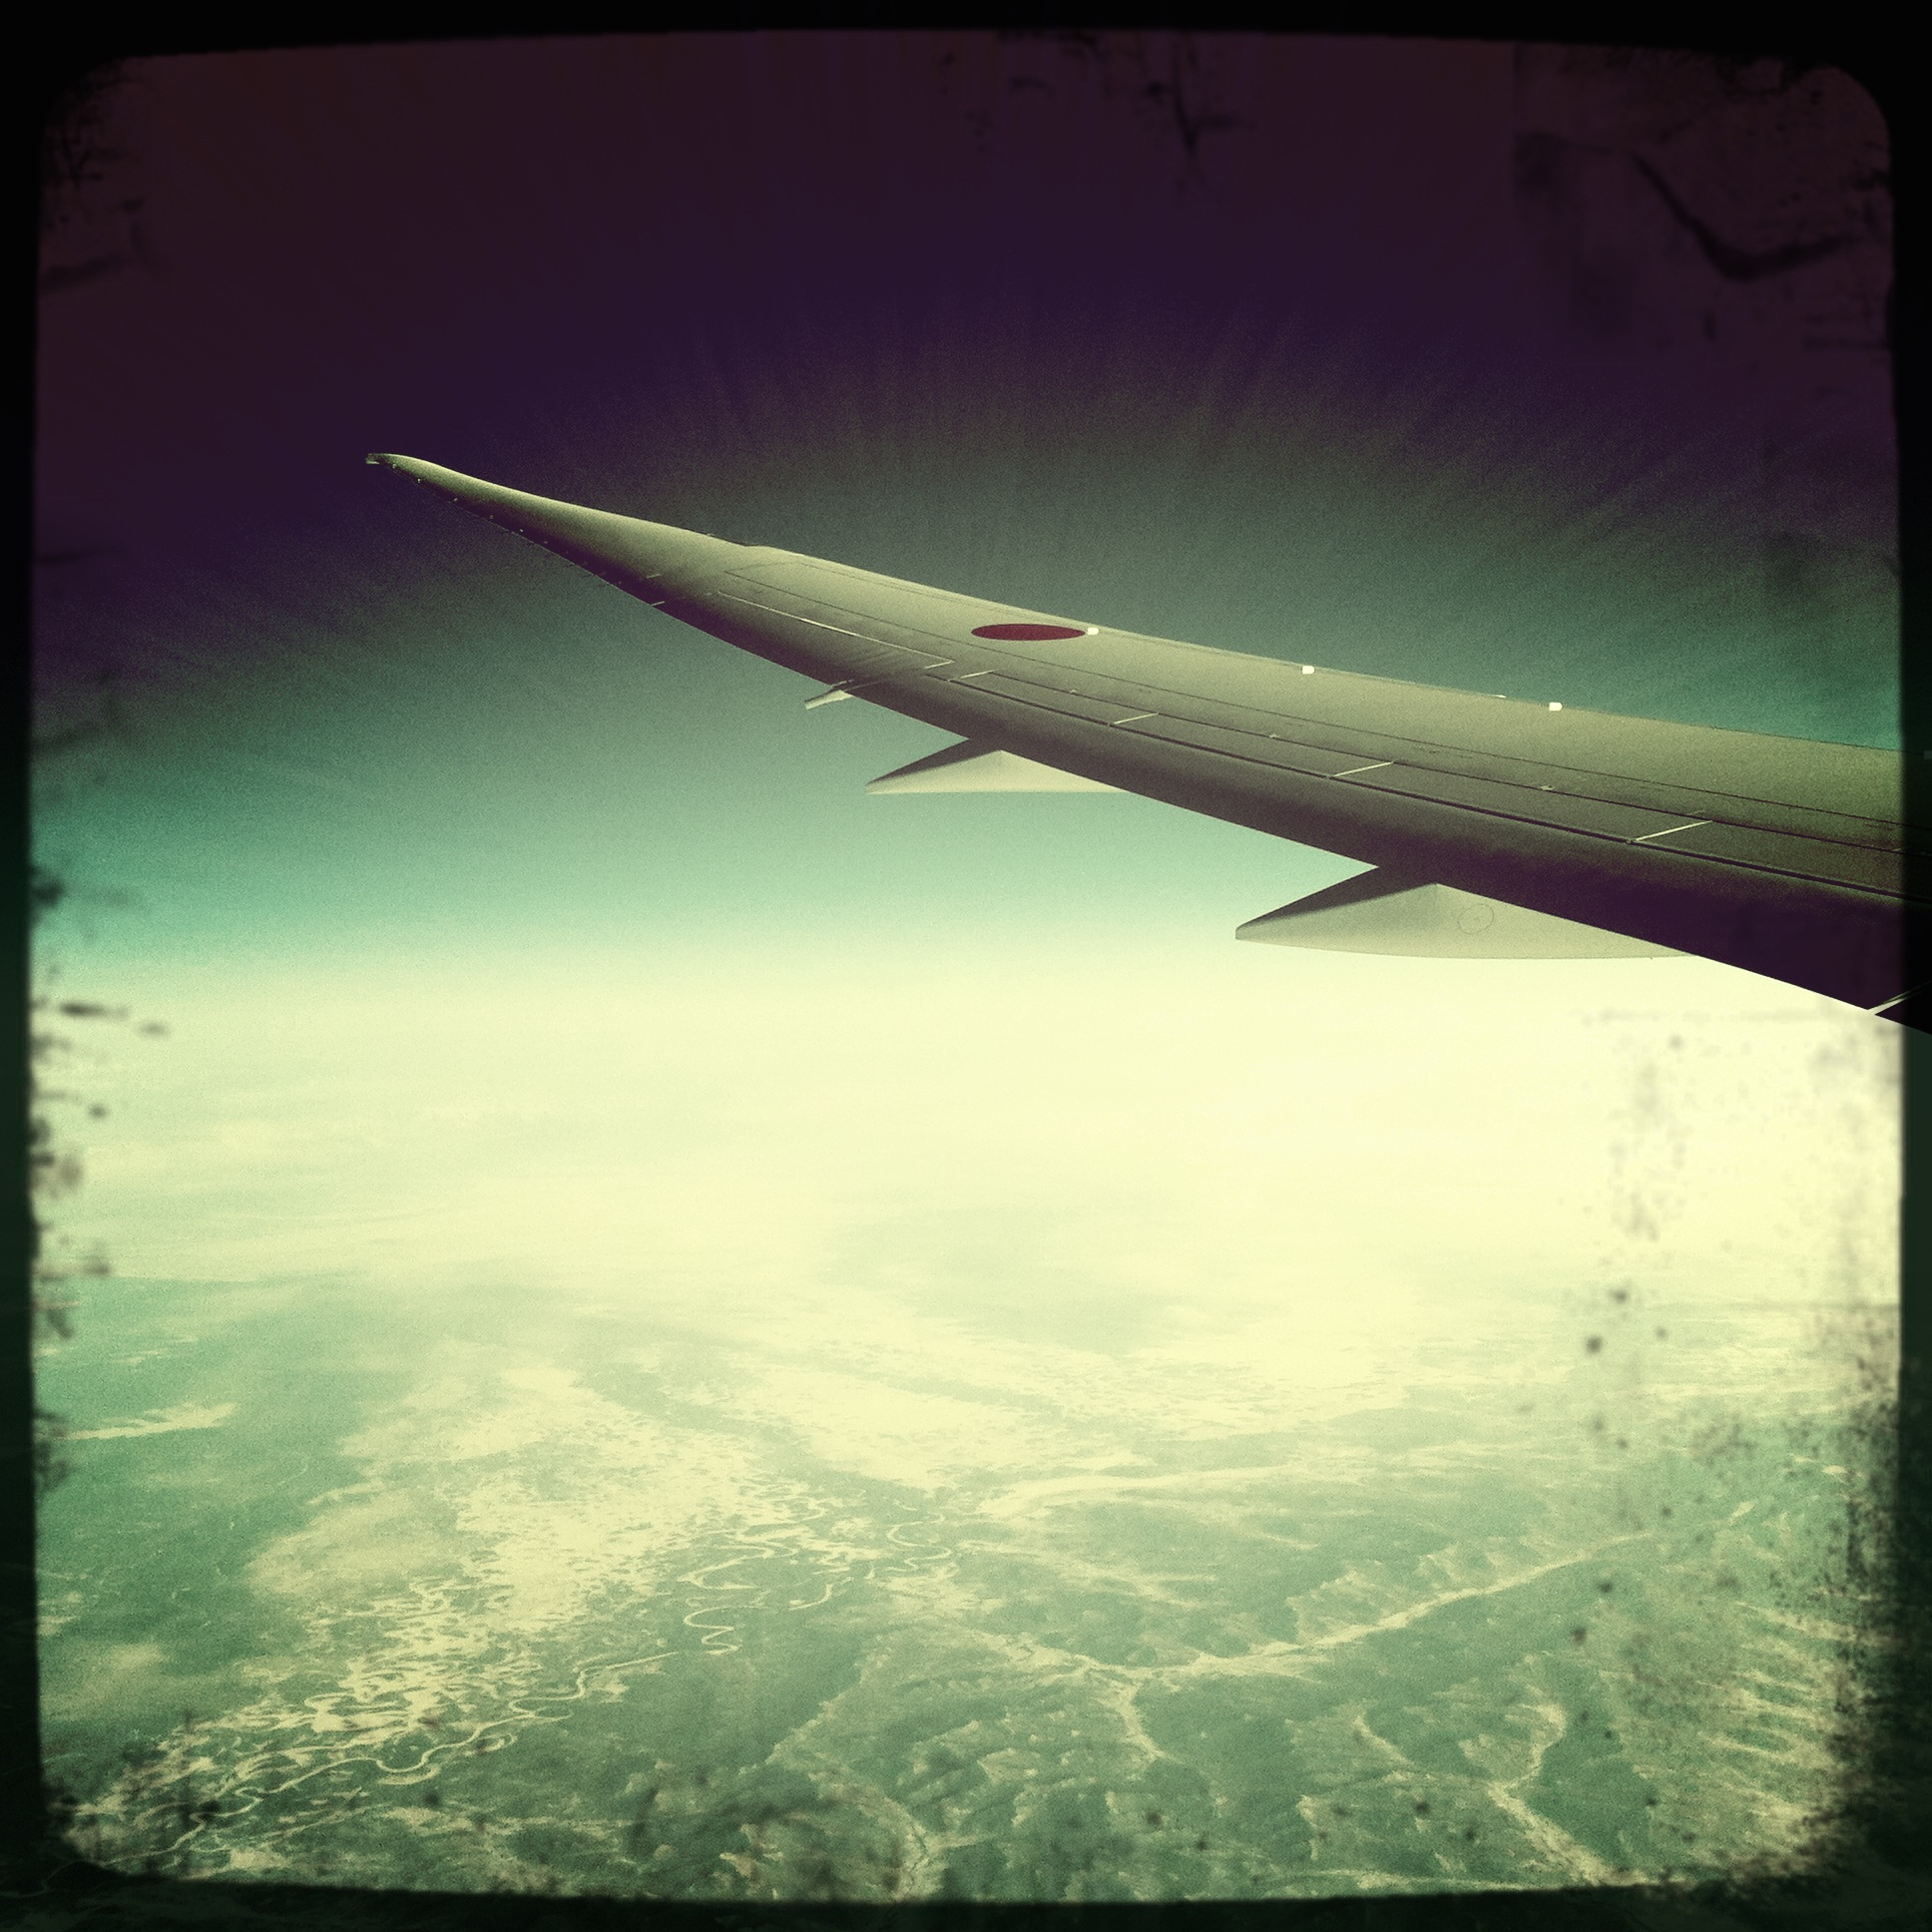 A Hipstamatic impression of 'Morning over Russia'...holy crap, that's Russia down there!